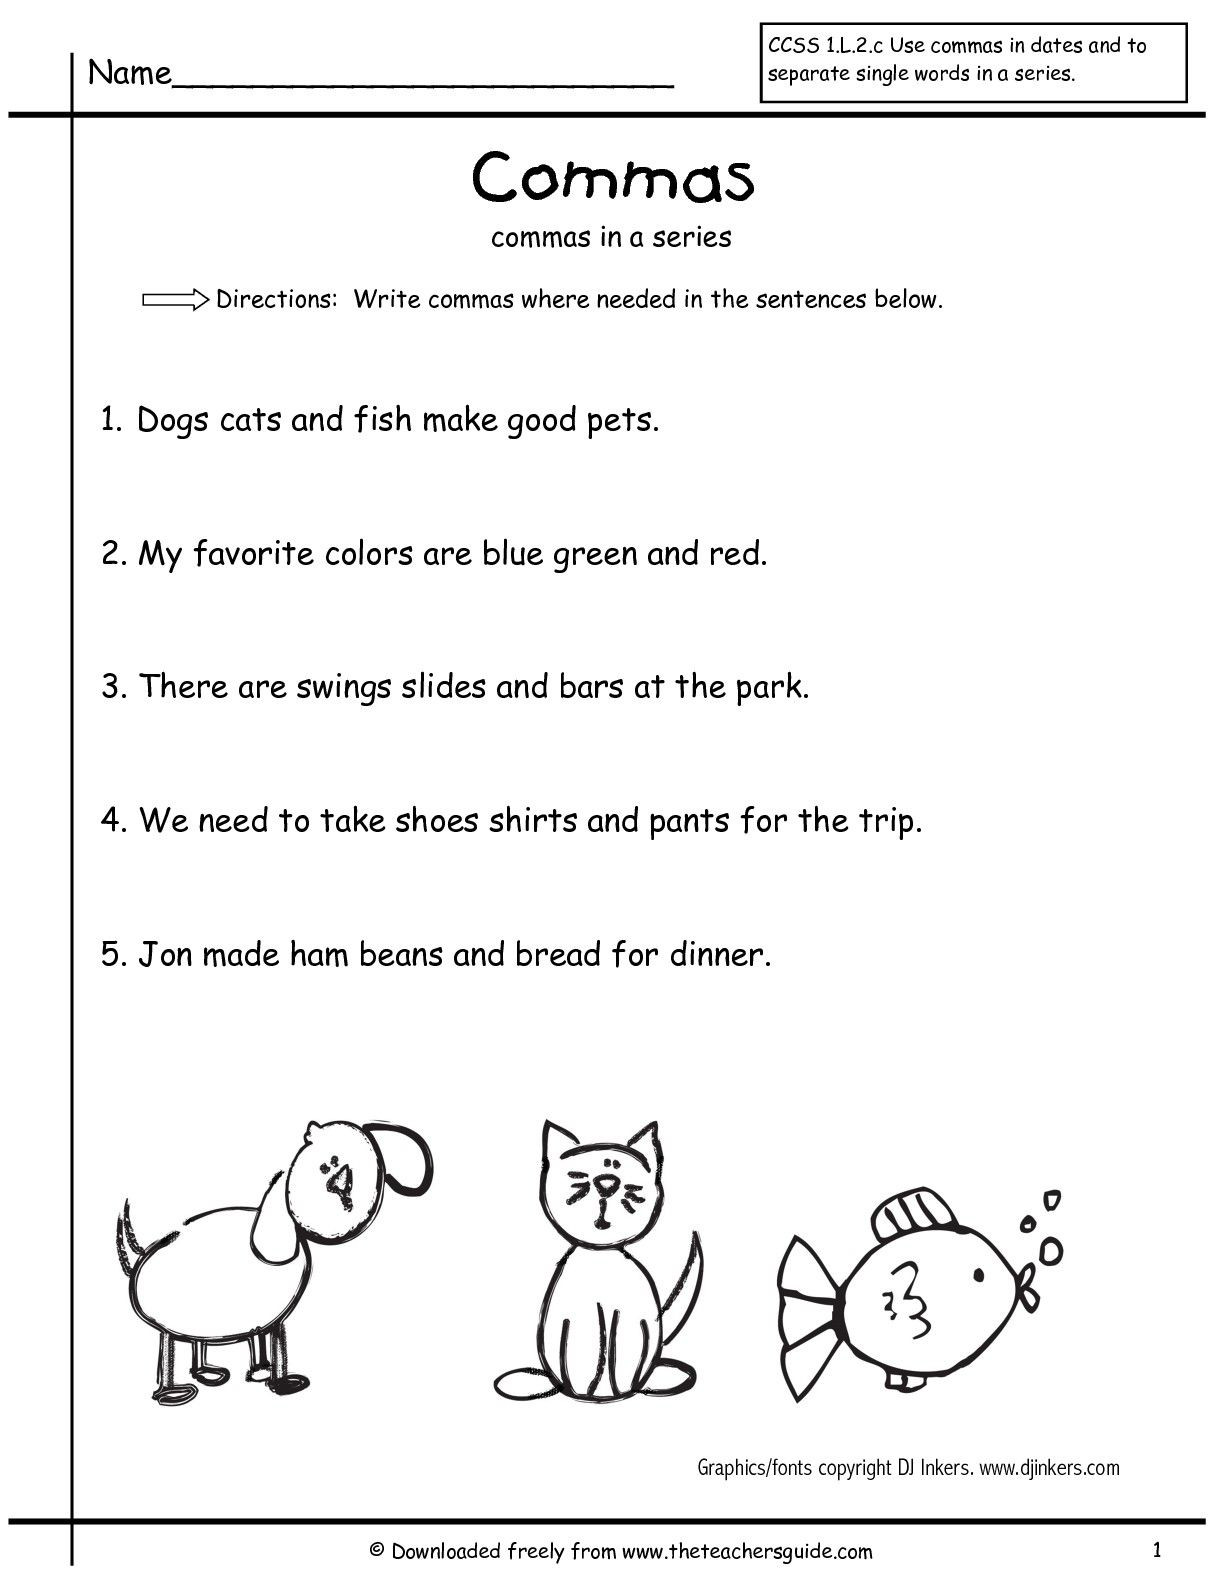 Commas Worksheets 5th Grade Grammar Worksheets Mas In A Series First Grade Free